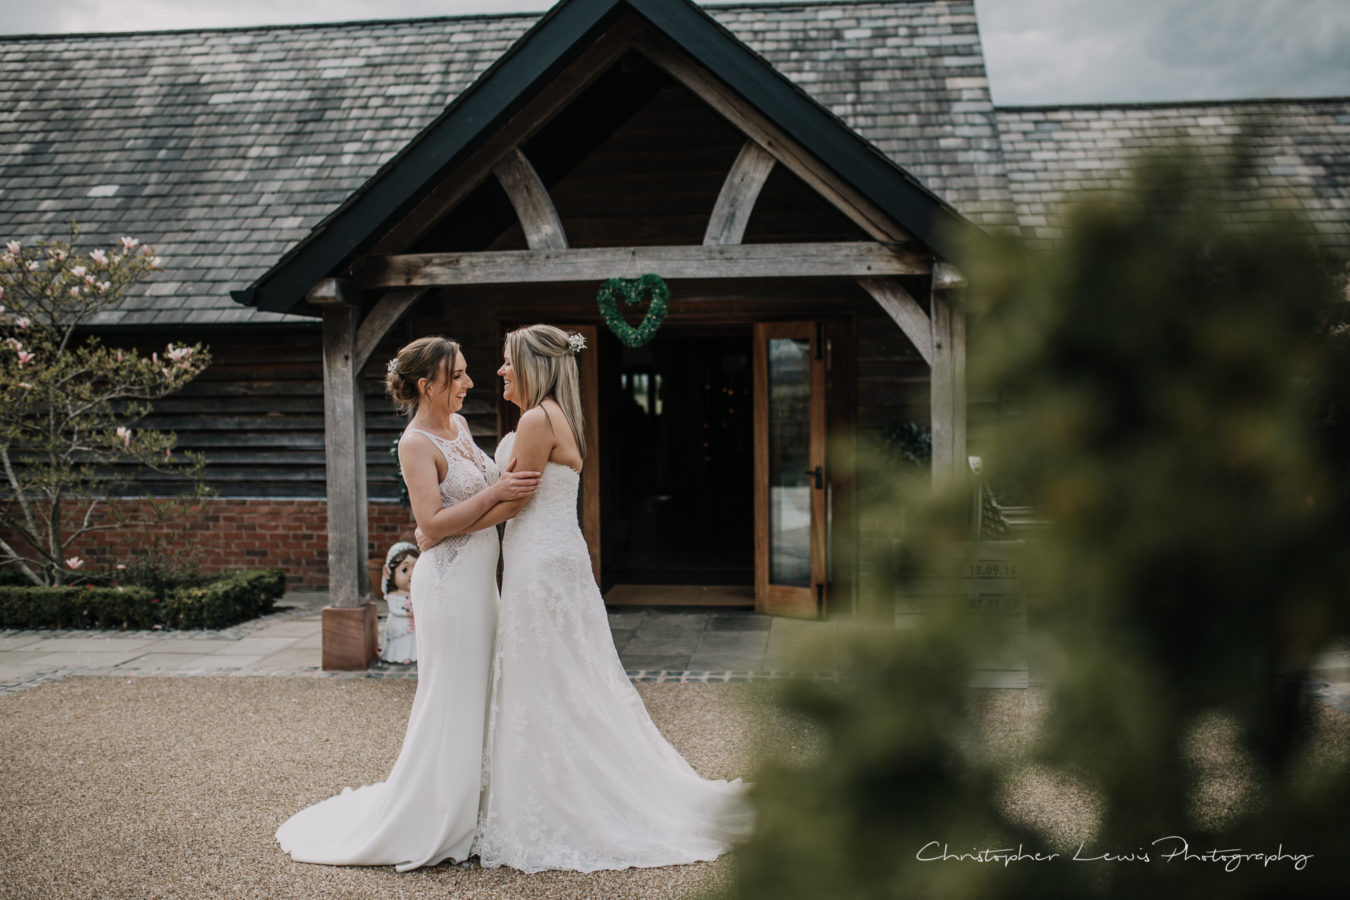 Sandhole-Oak-Barn-Wedding-Christopher-Lewis-Photography- 39